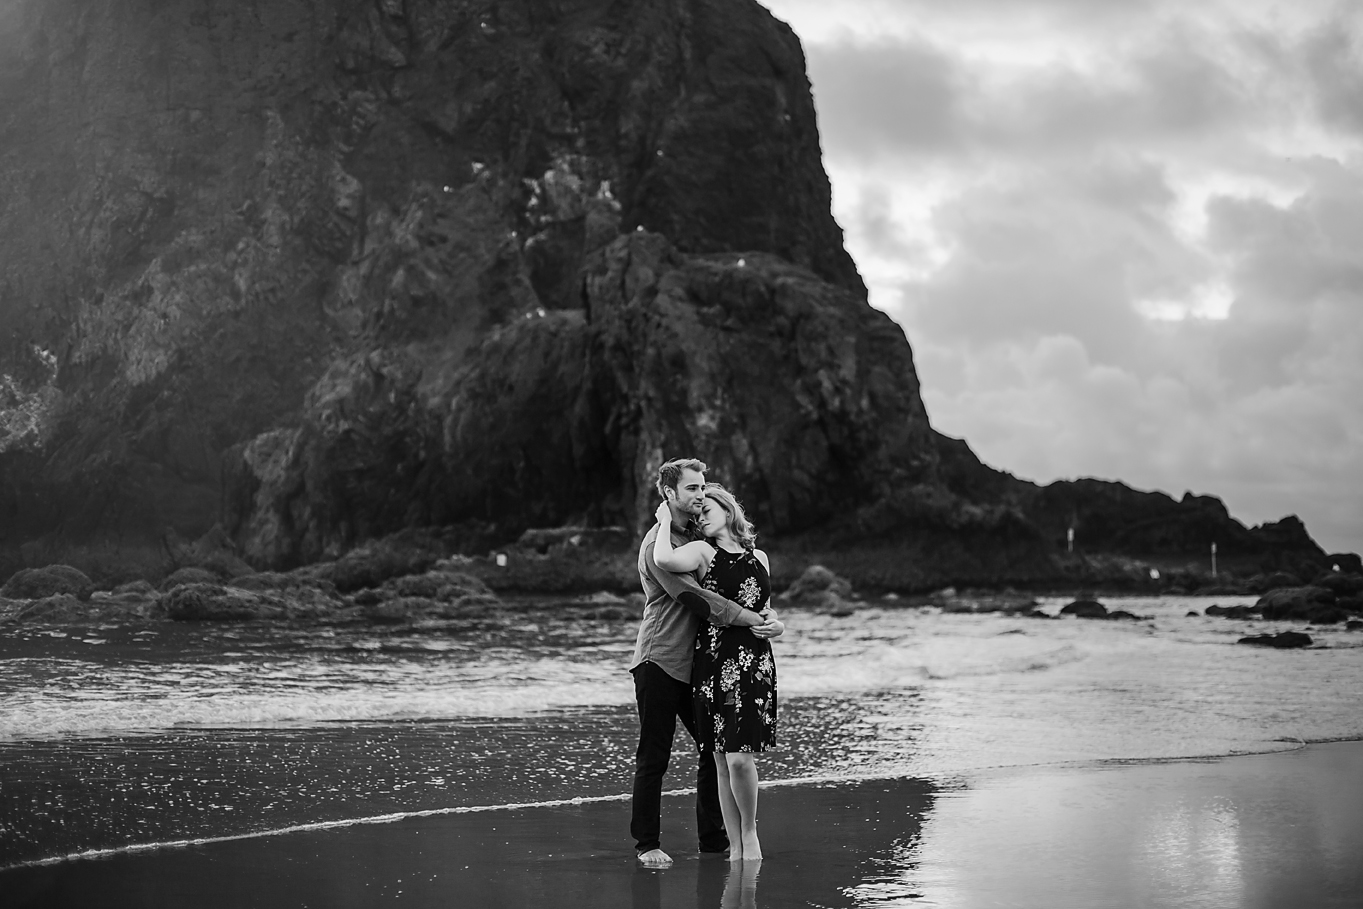 Amanda + Matt - Oregon Coast Engagement Photographer - Destination Elopement Photographer - Emily & Co. Photography (10).jpg